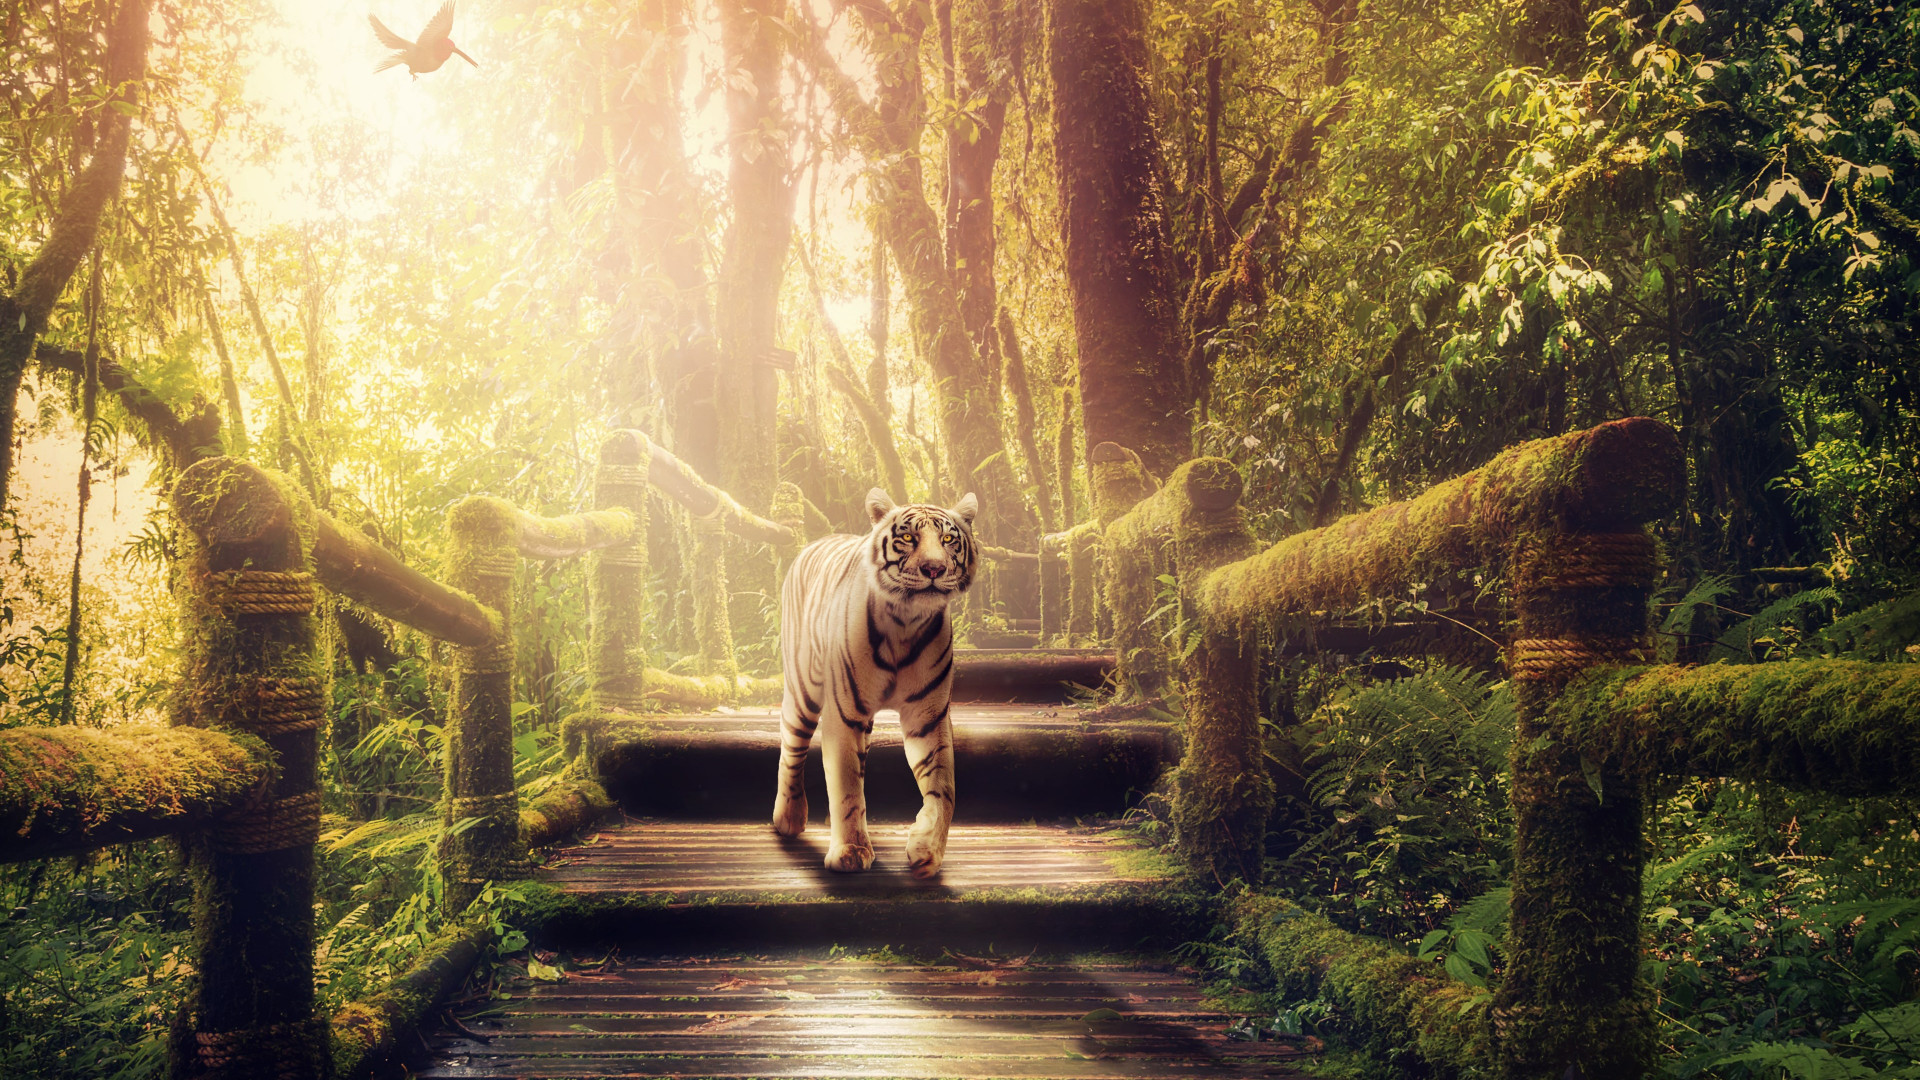 Download Wallpaper The Tiger Of Jungle 1920x1080